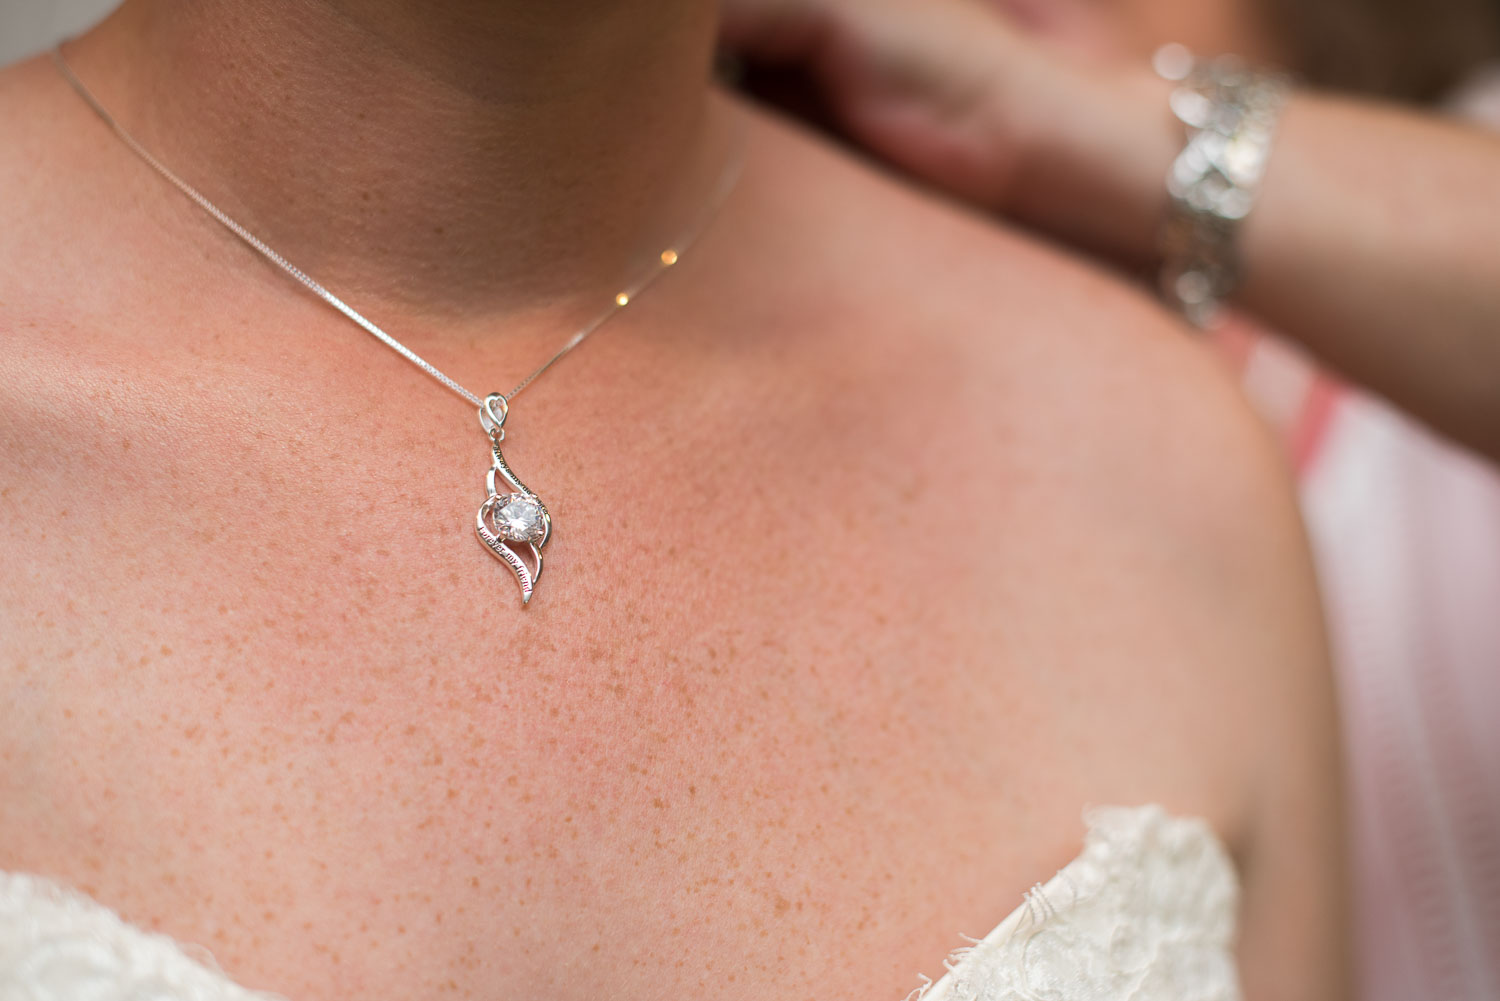 18 Mother of the bride helps put on the necklace she purchased for brittney as a wedding day gift.jpg